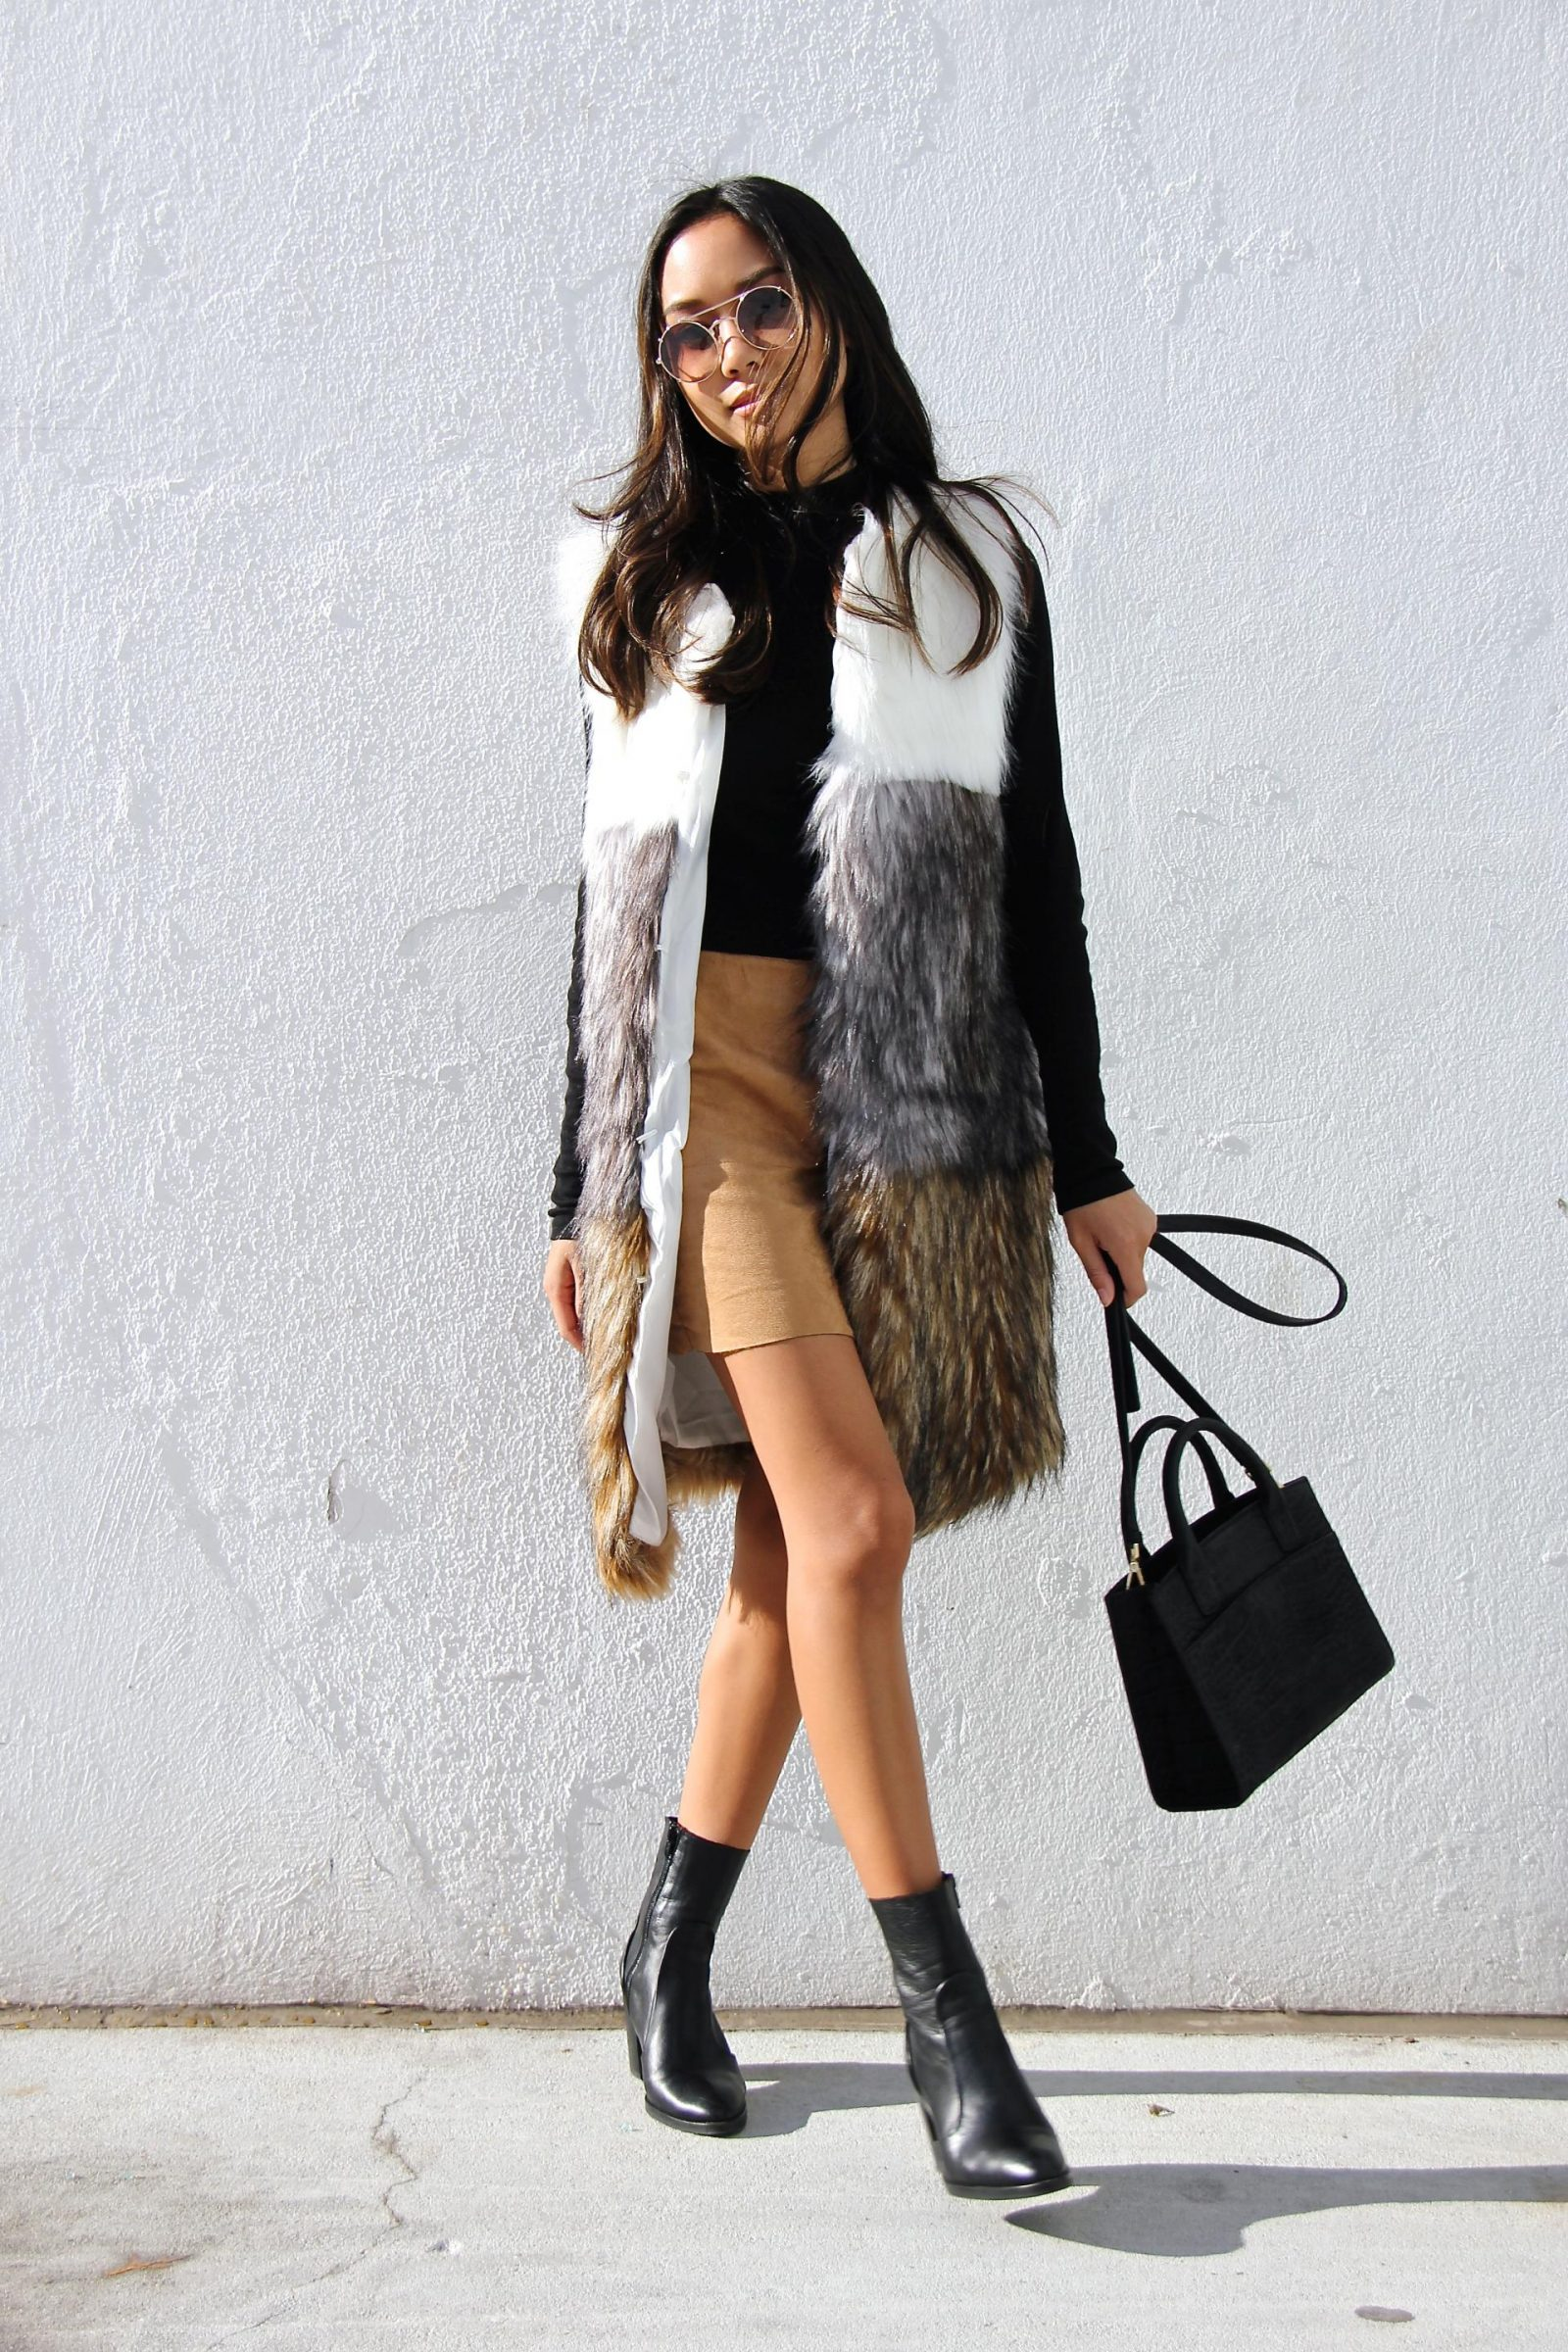 Faux fur is a must have if you are invested in attaining a true bohemian style! Linh Niller Huynh is rocking the hippie vibe in this gorgeous neutral coloured faux fur vest, paired with ankle boots and a beige mini skirt. Top/ Dress: H&M, Fur Vest: Missguided, Shoes: Topshop, Bag: Emily Cho.